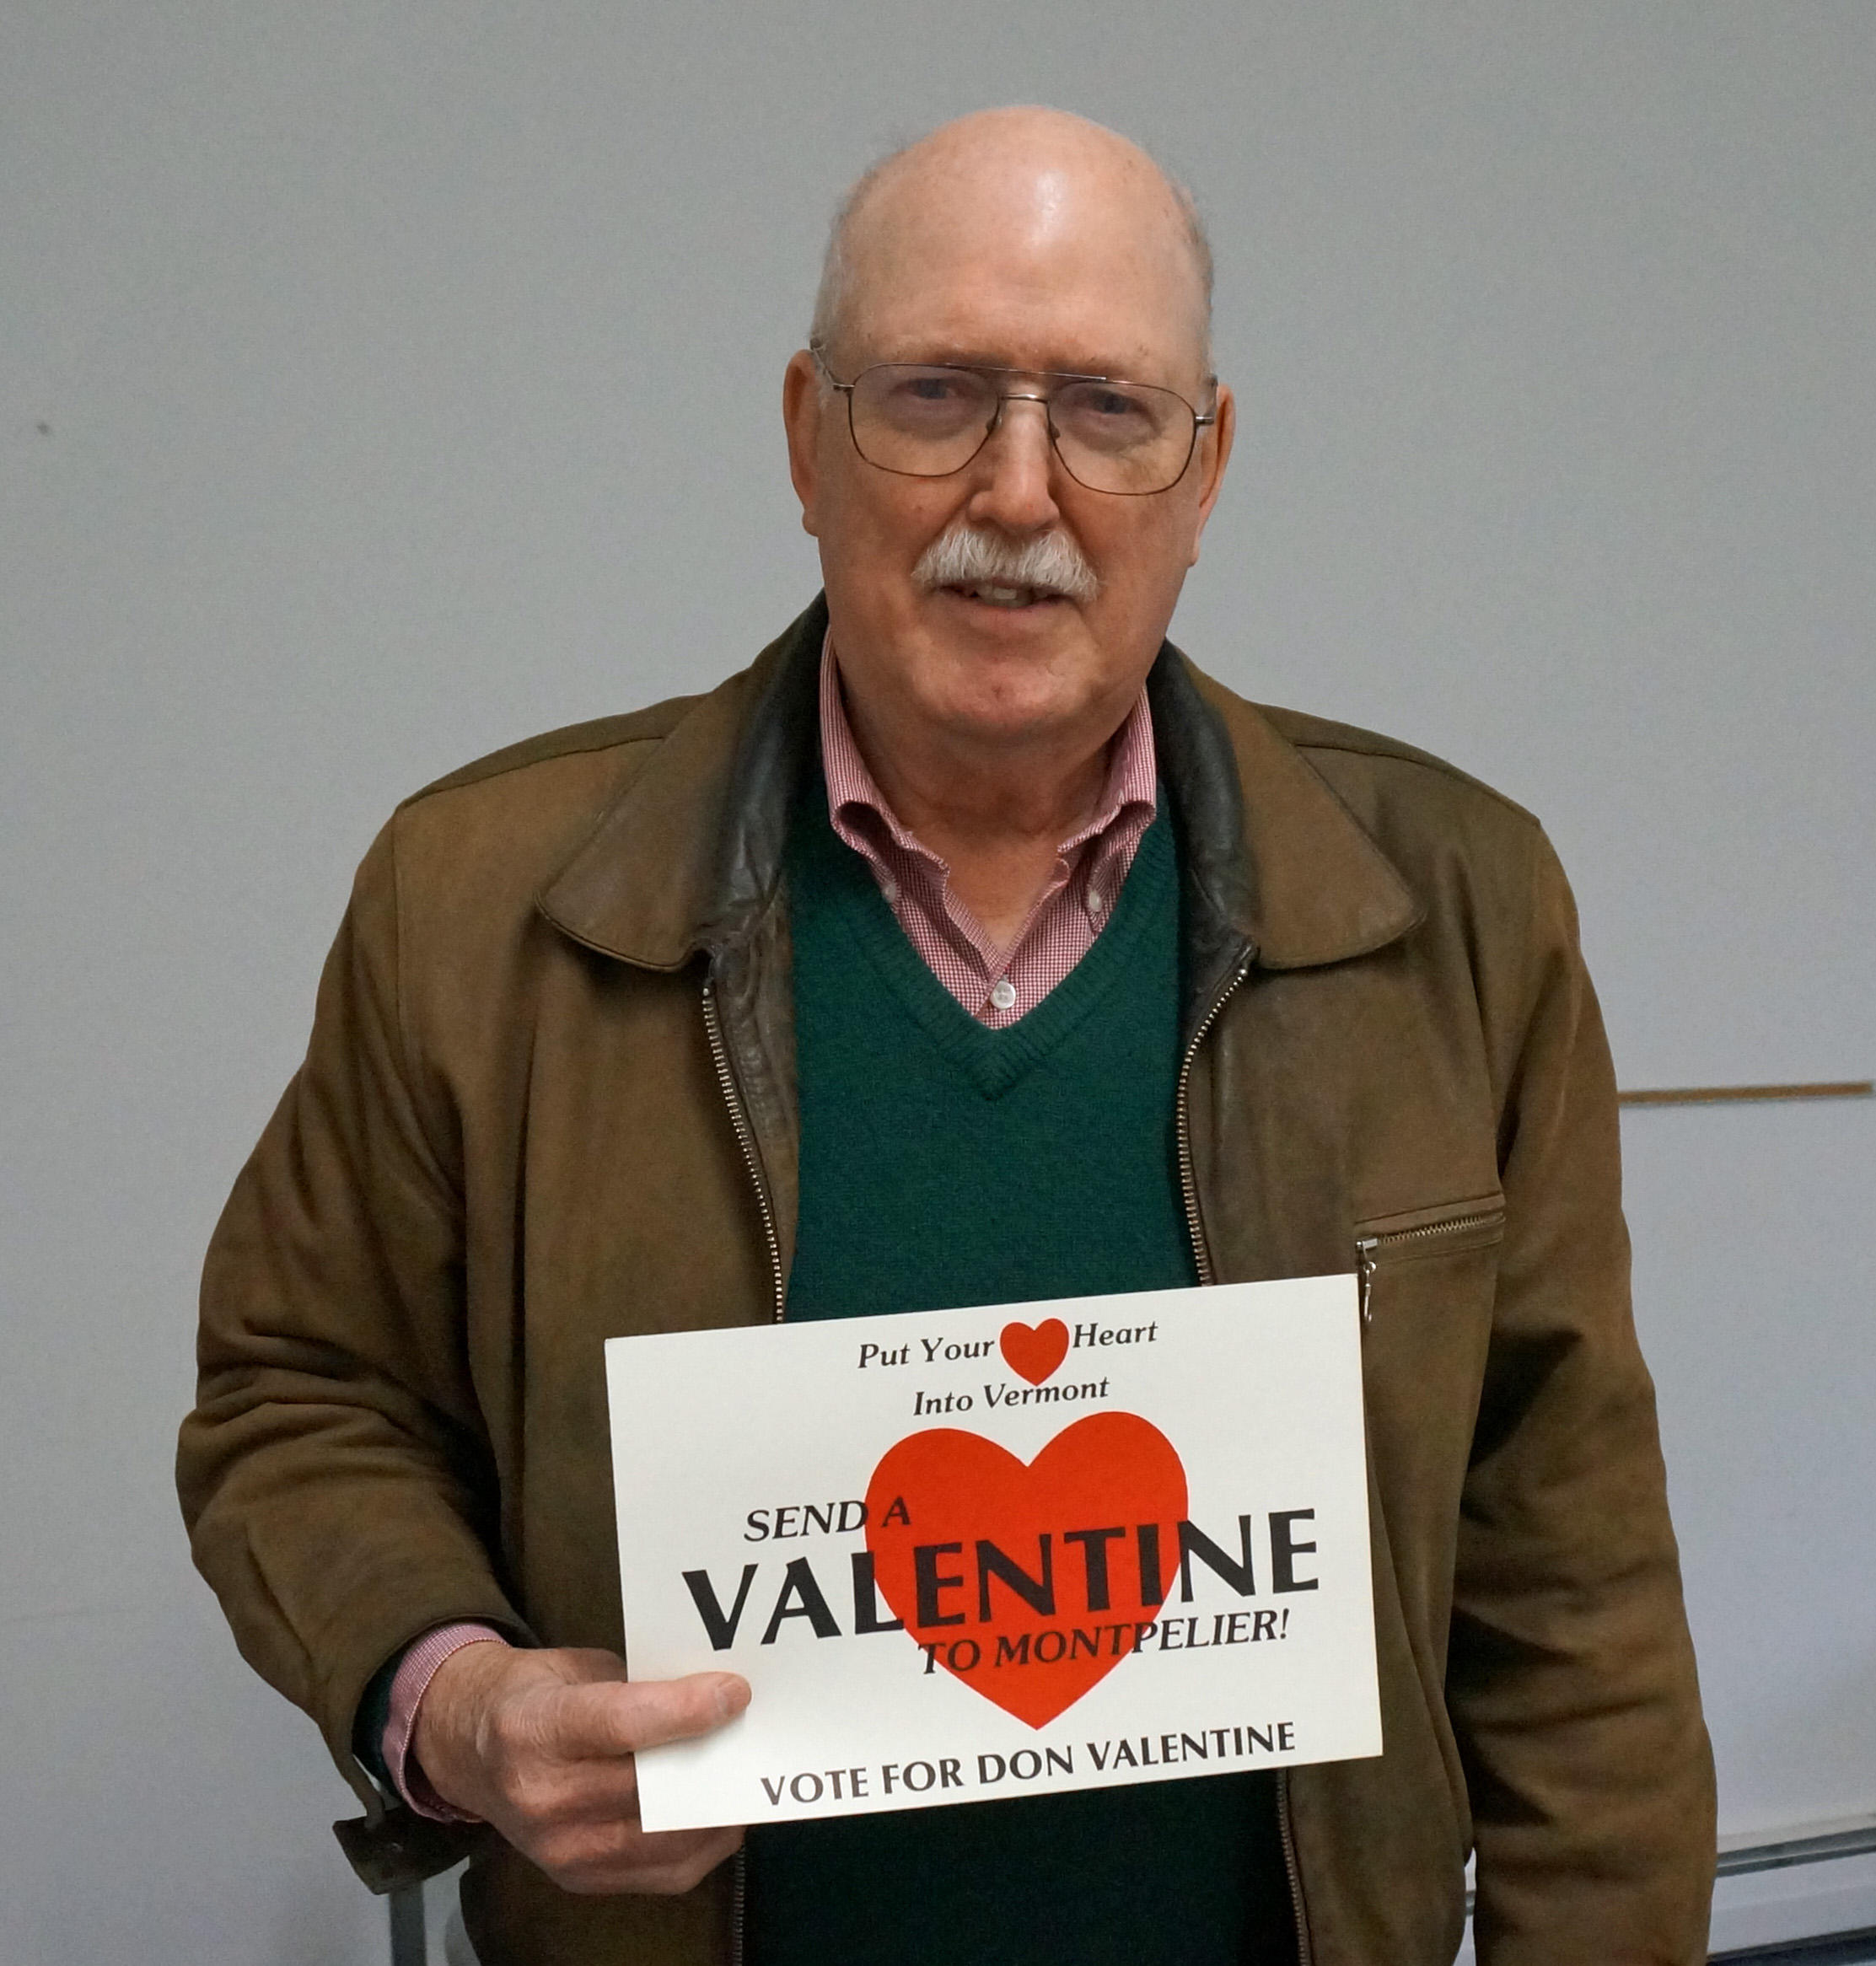 Independent Candidate Don Valentine Is Asking Voters To U0027send A Valentine  To Montpelier.u0027